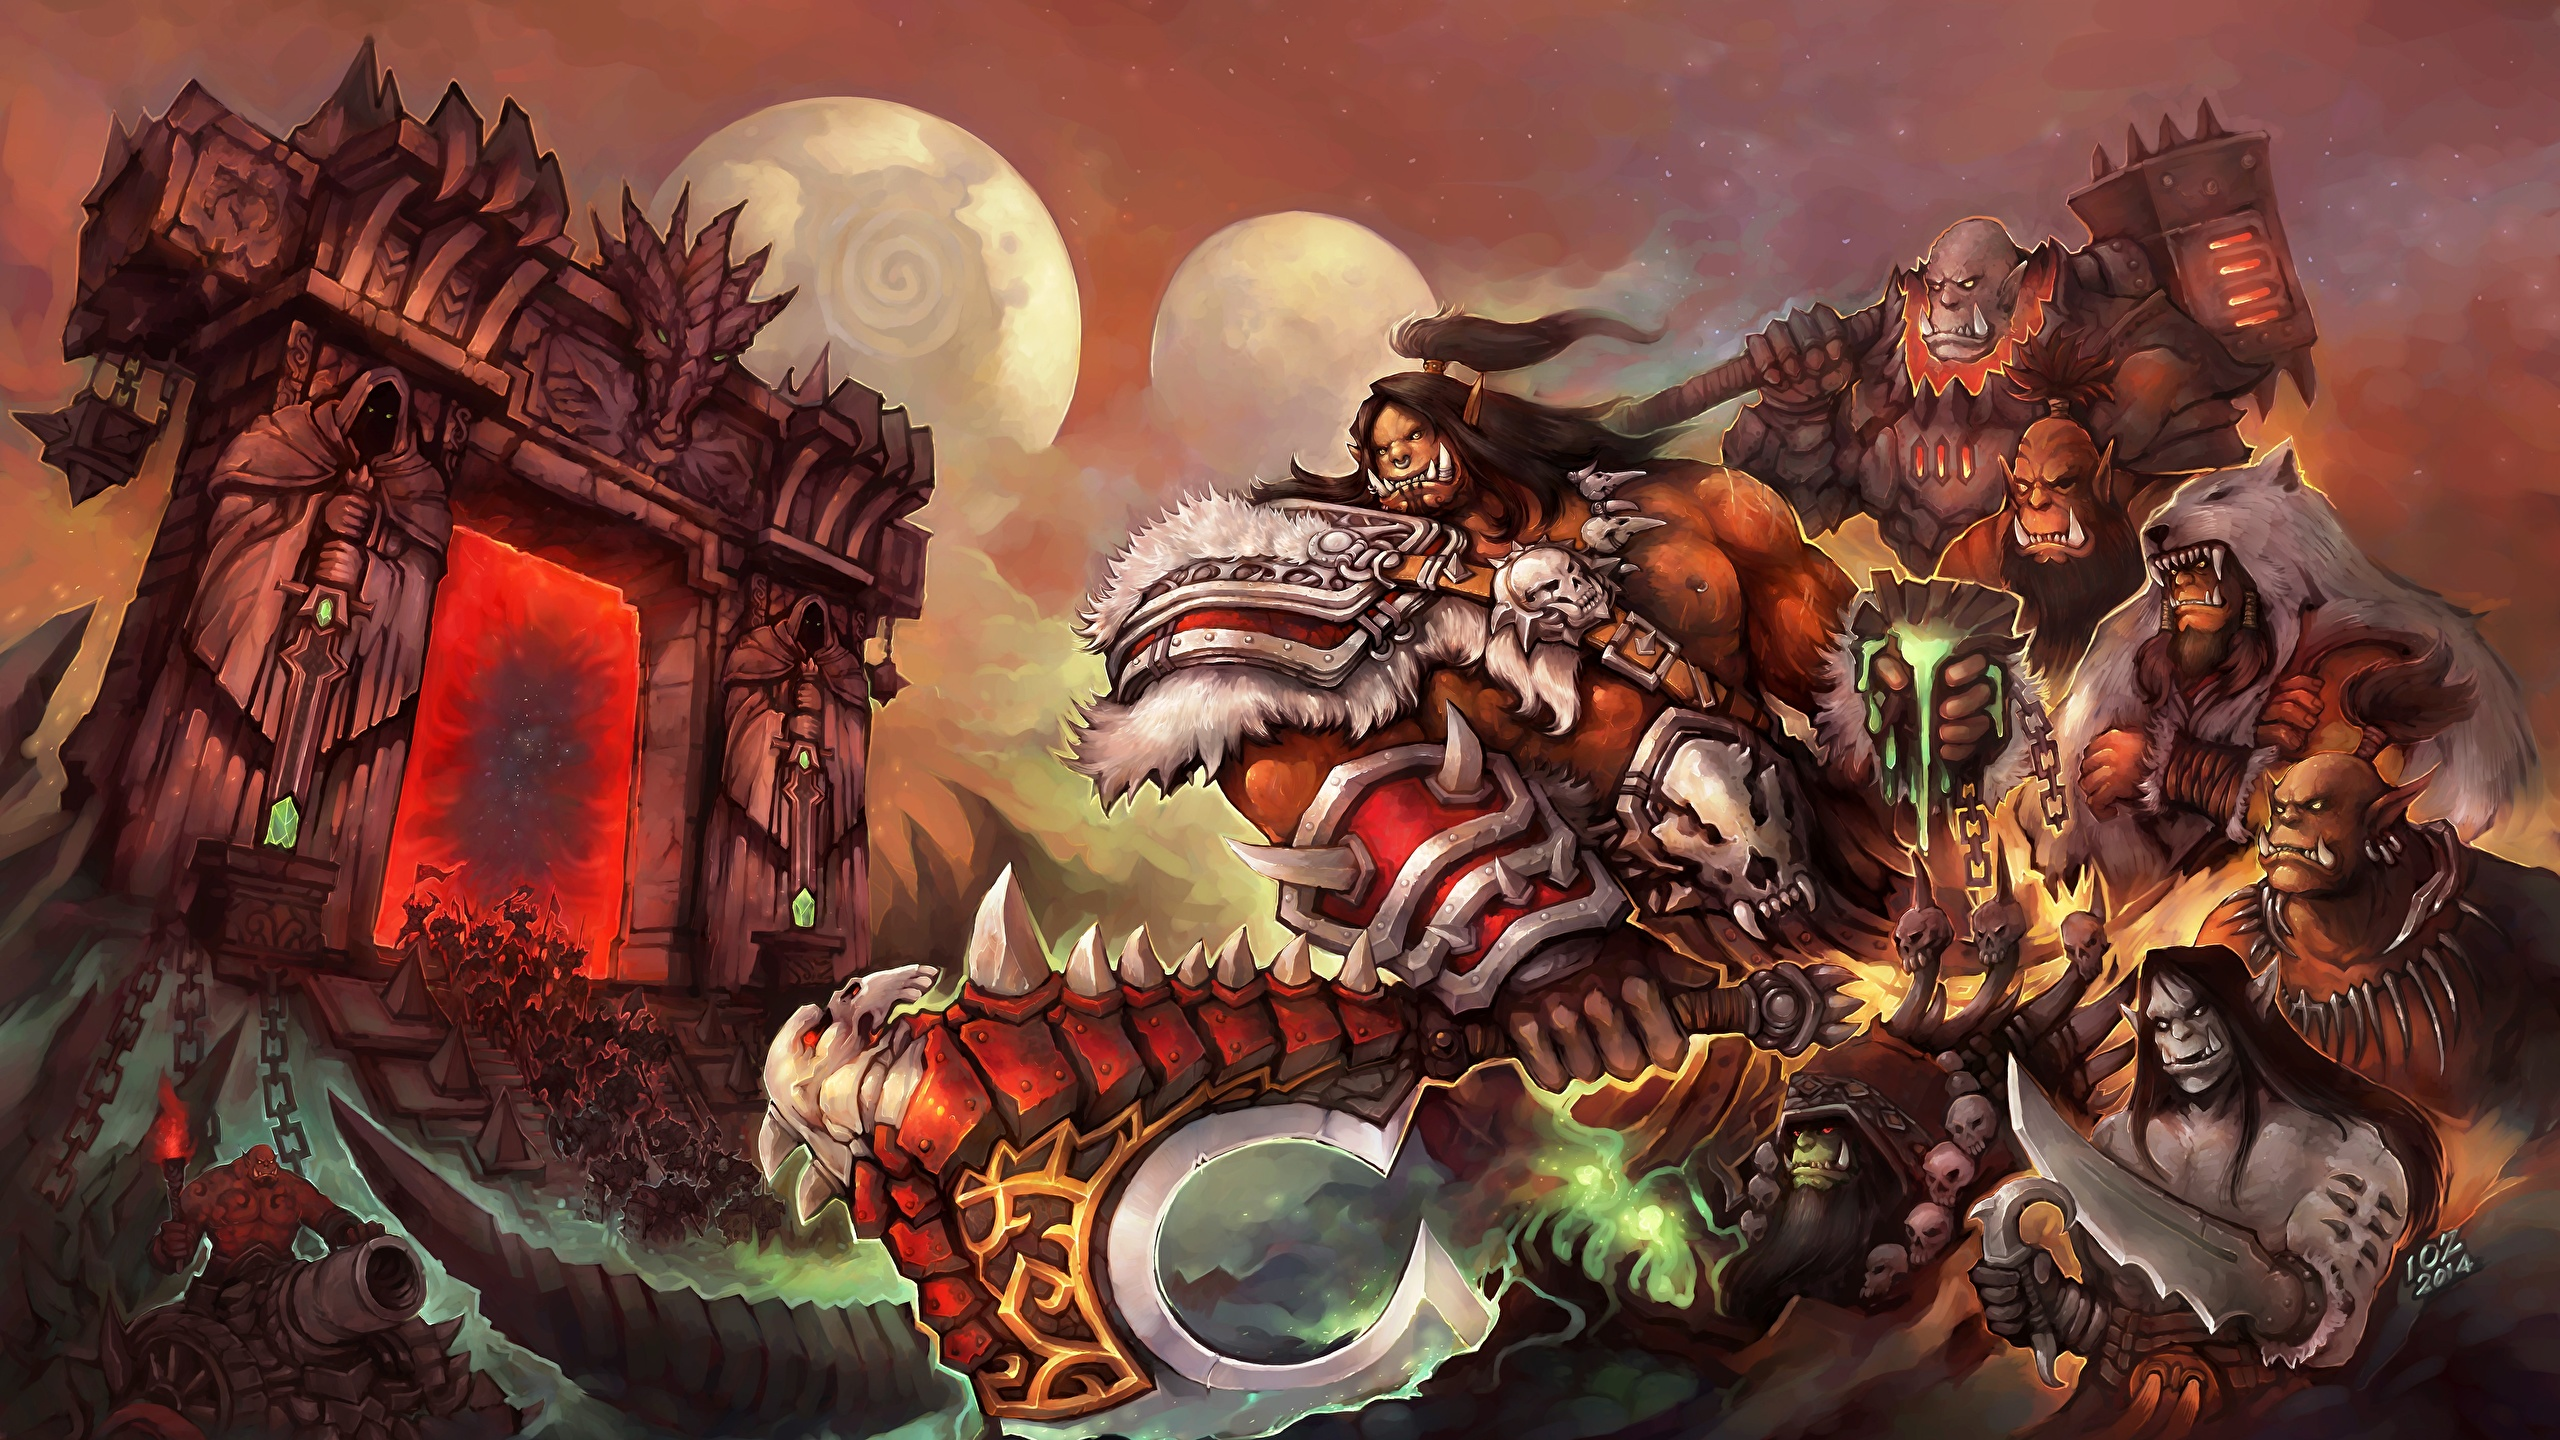 Images World Of Warcraft Orc Monsters Fantasy Vdeo Game 2560x1440